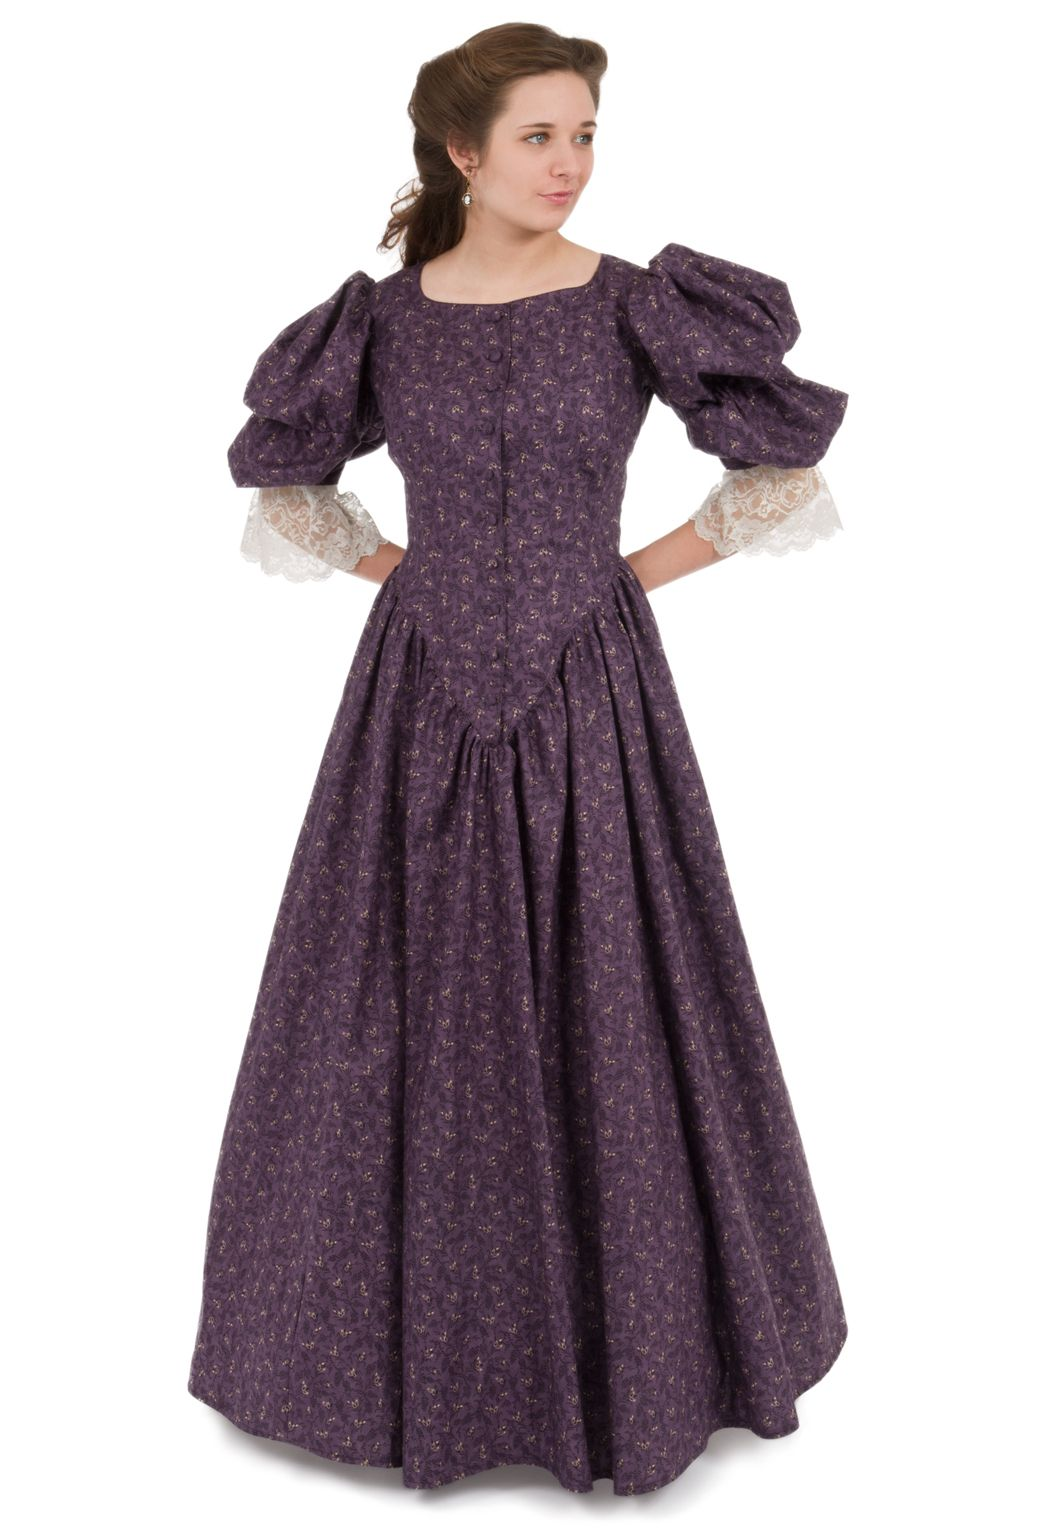 aileen victorian dress  old fashion dresses pioneer